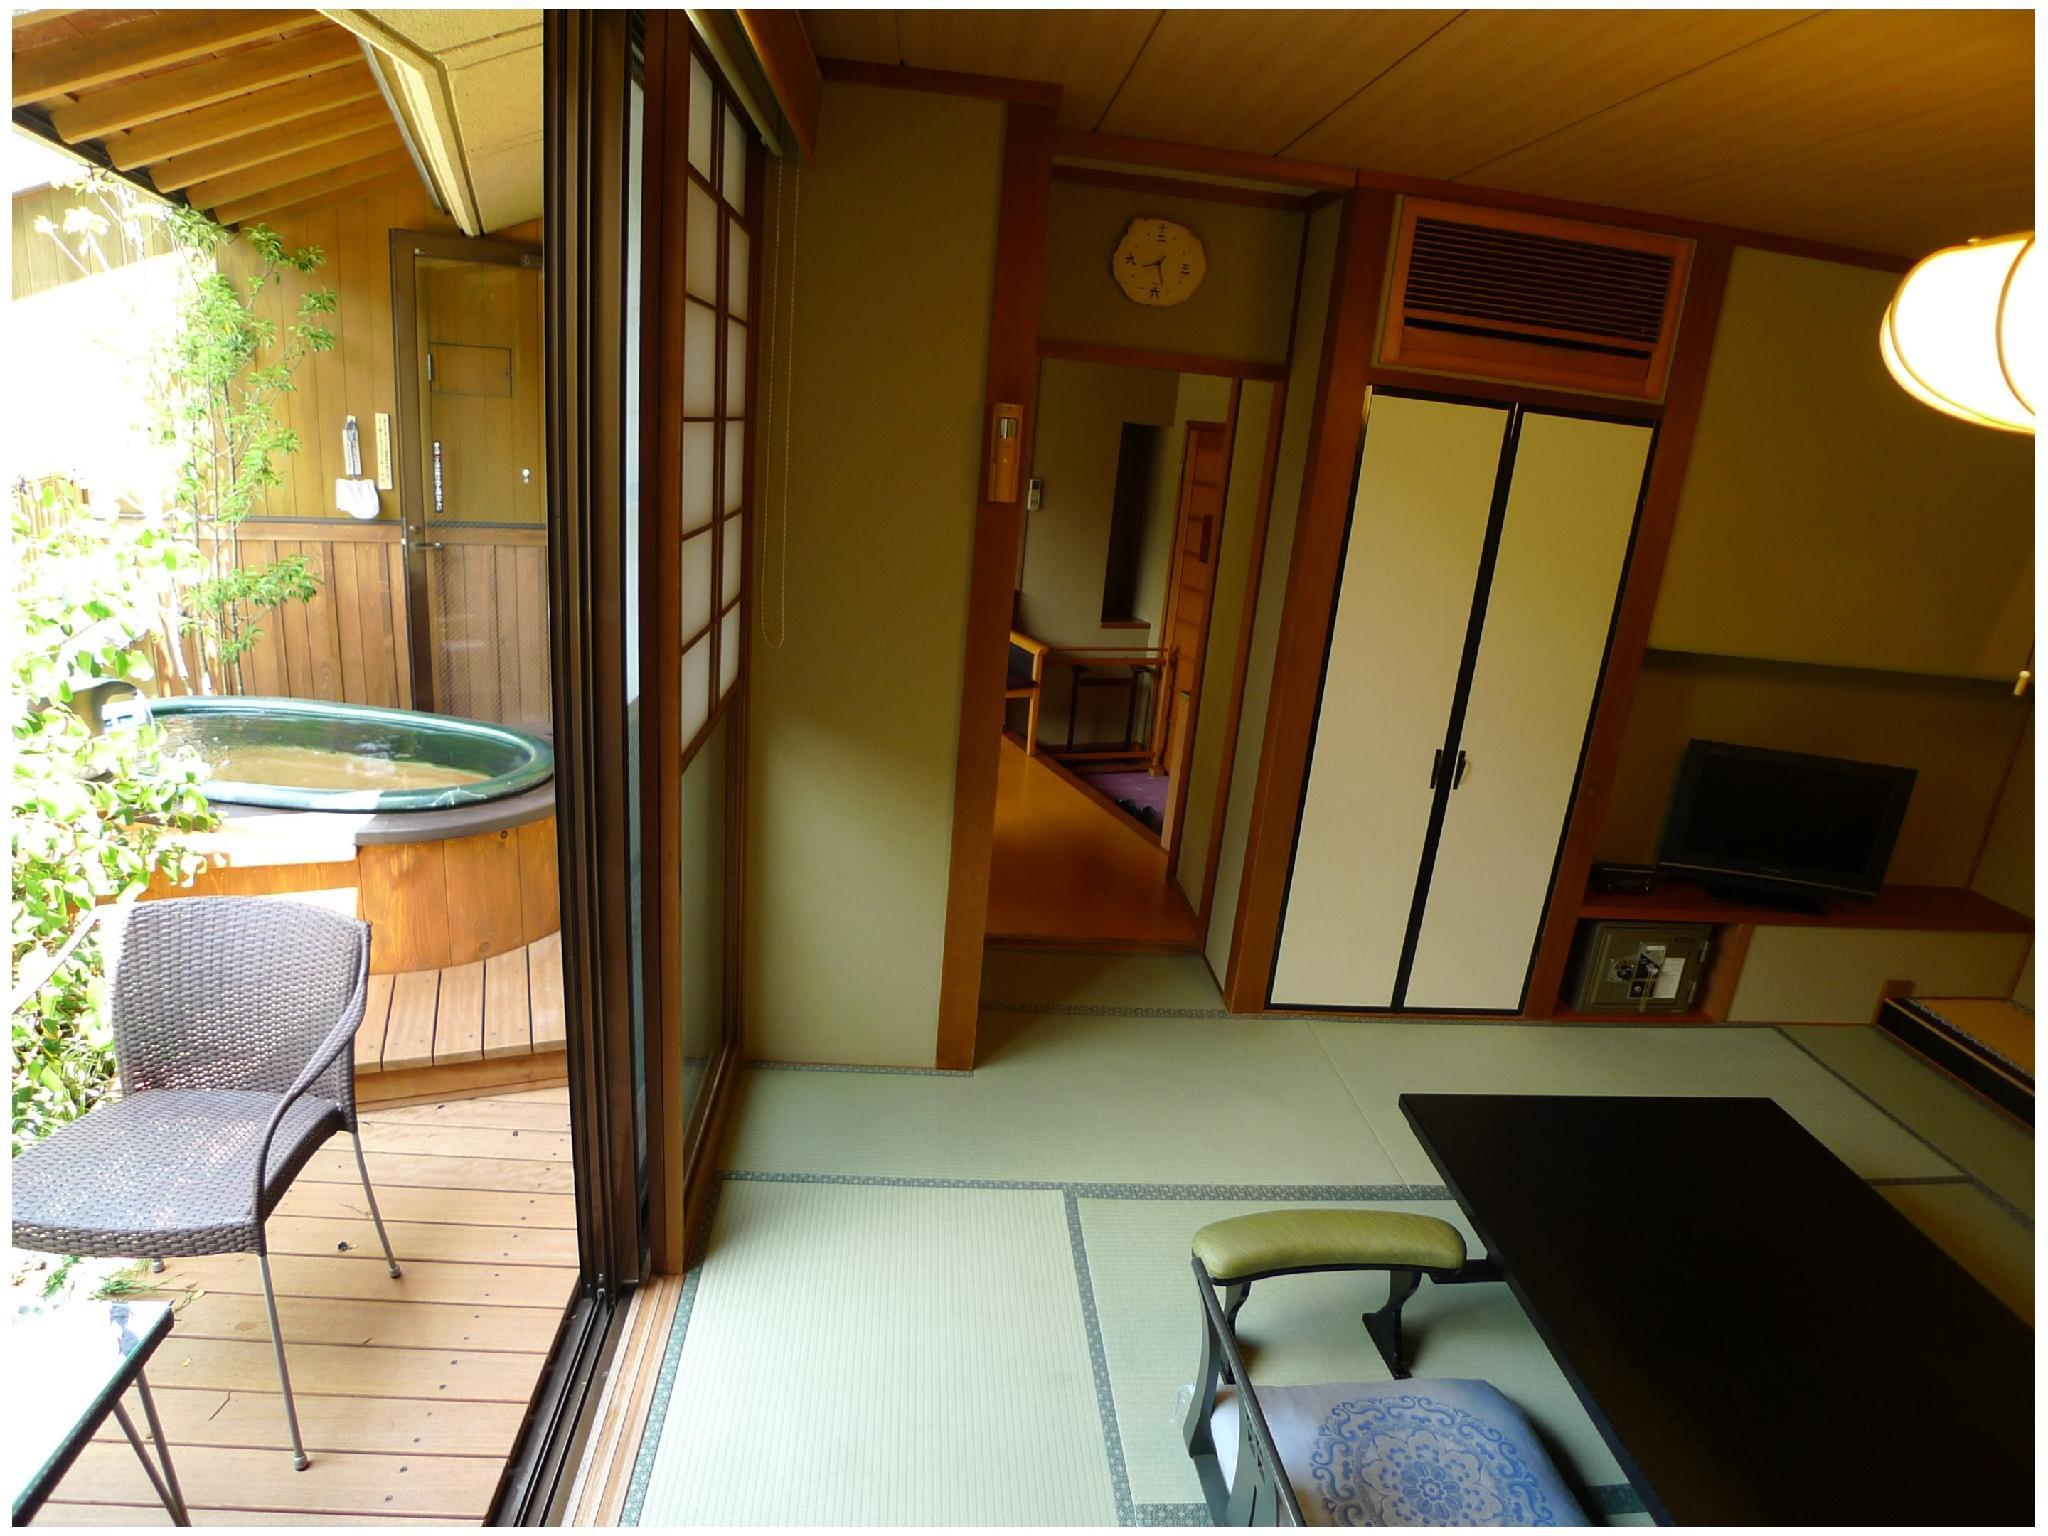 Japanese-style Room with Terrace Seating, Ceramic Open-air Bath, and Garden (Housenka-no-Ma Type, Main Building)